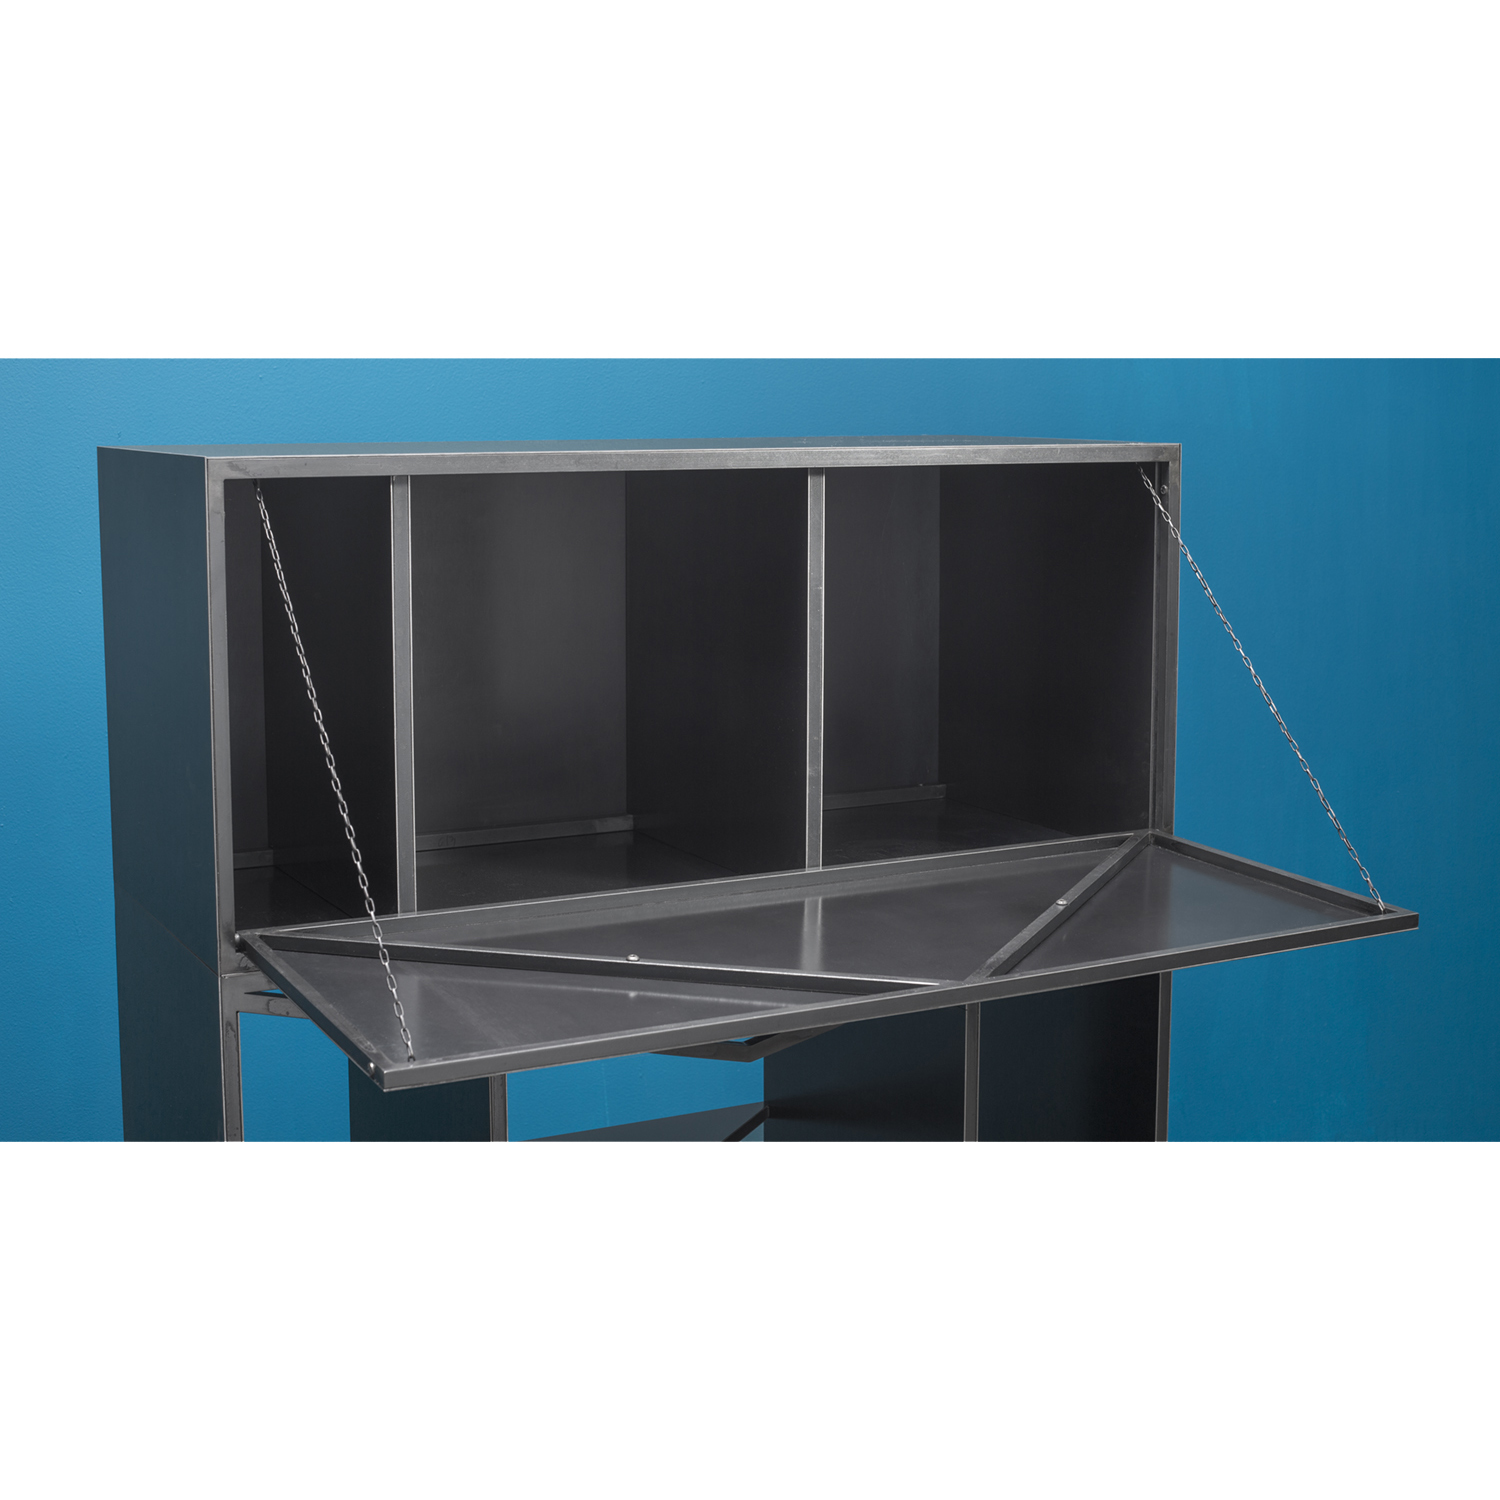 Meridian modular credenza cabinet clean